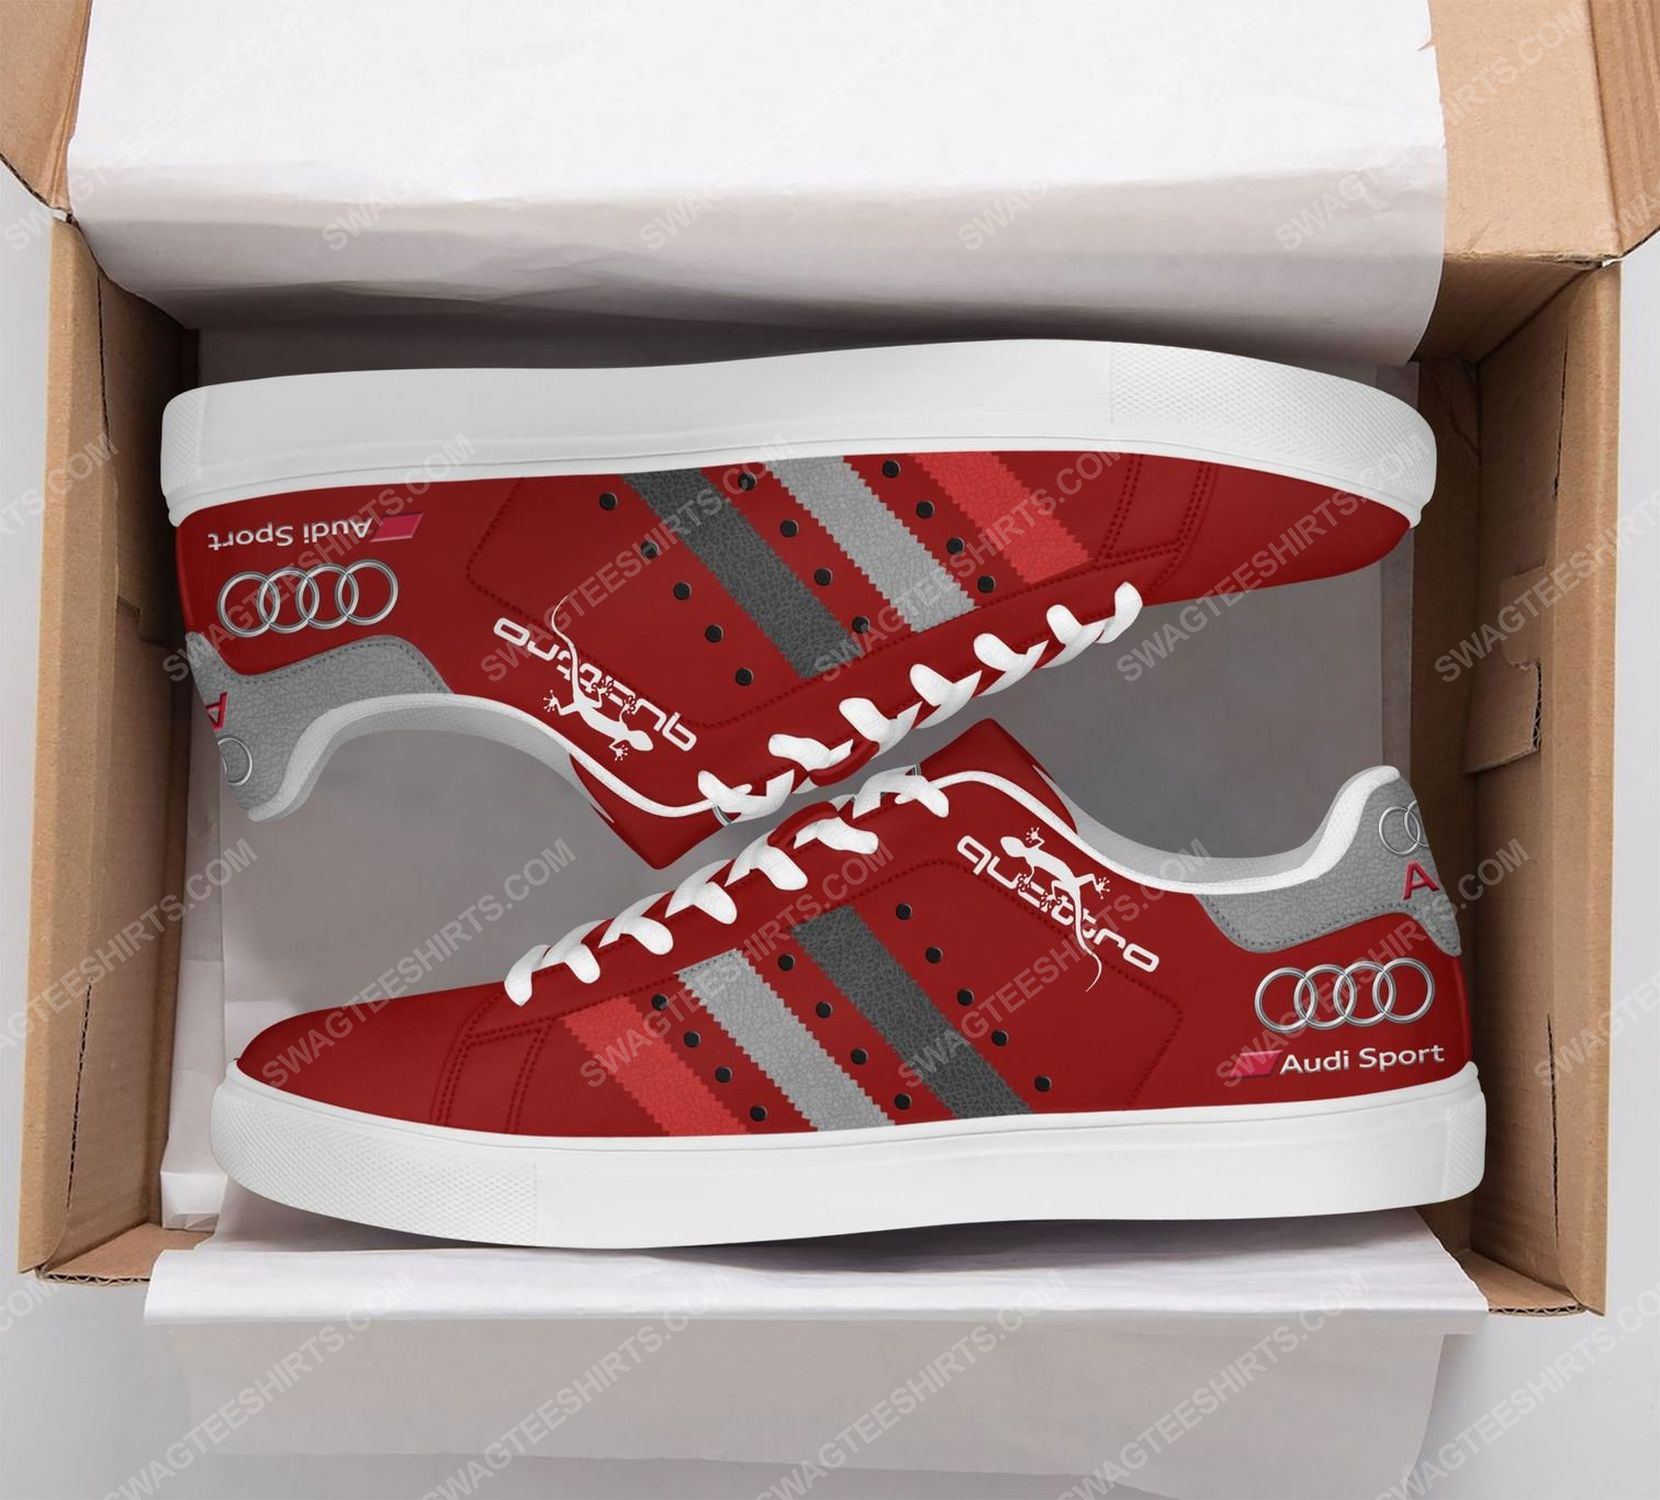 The audi quattro version red stan smith shoes 2